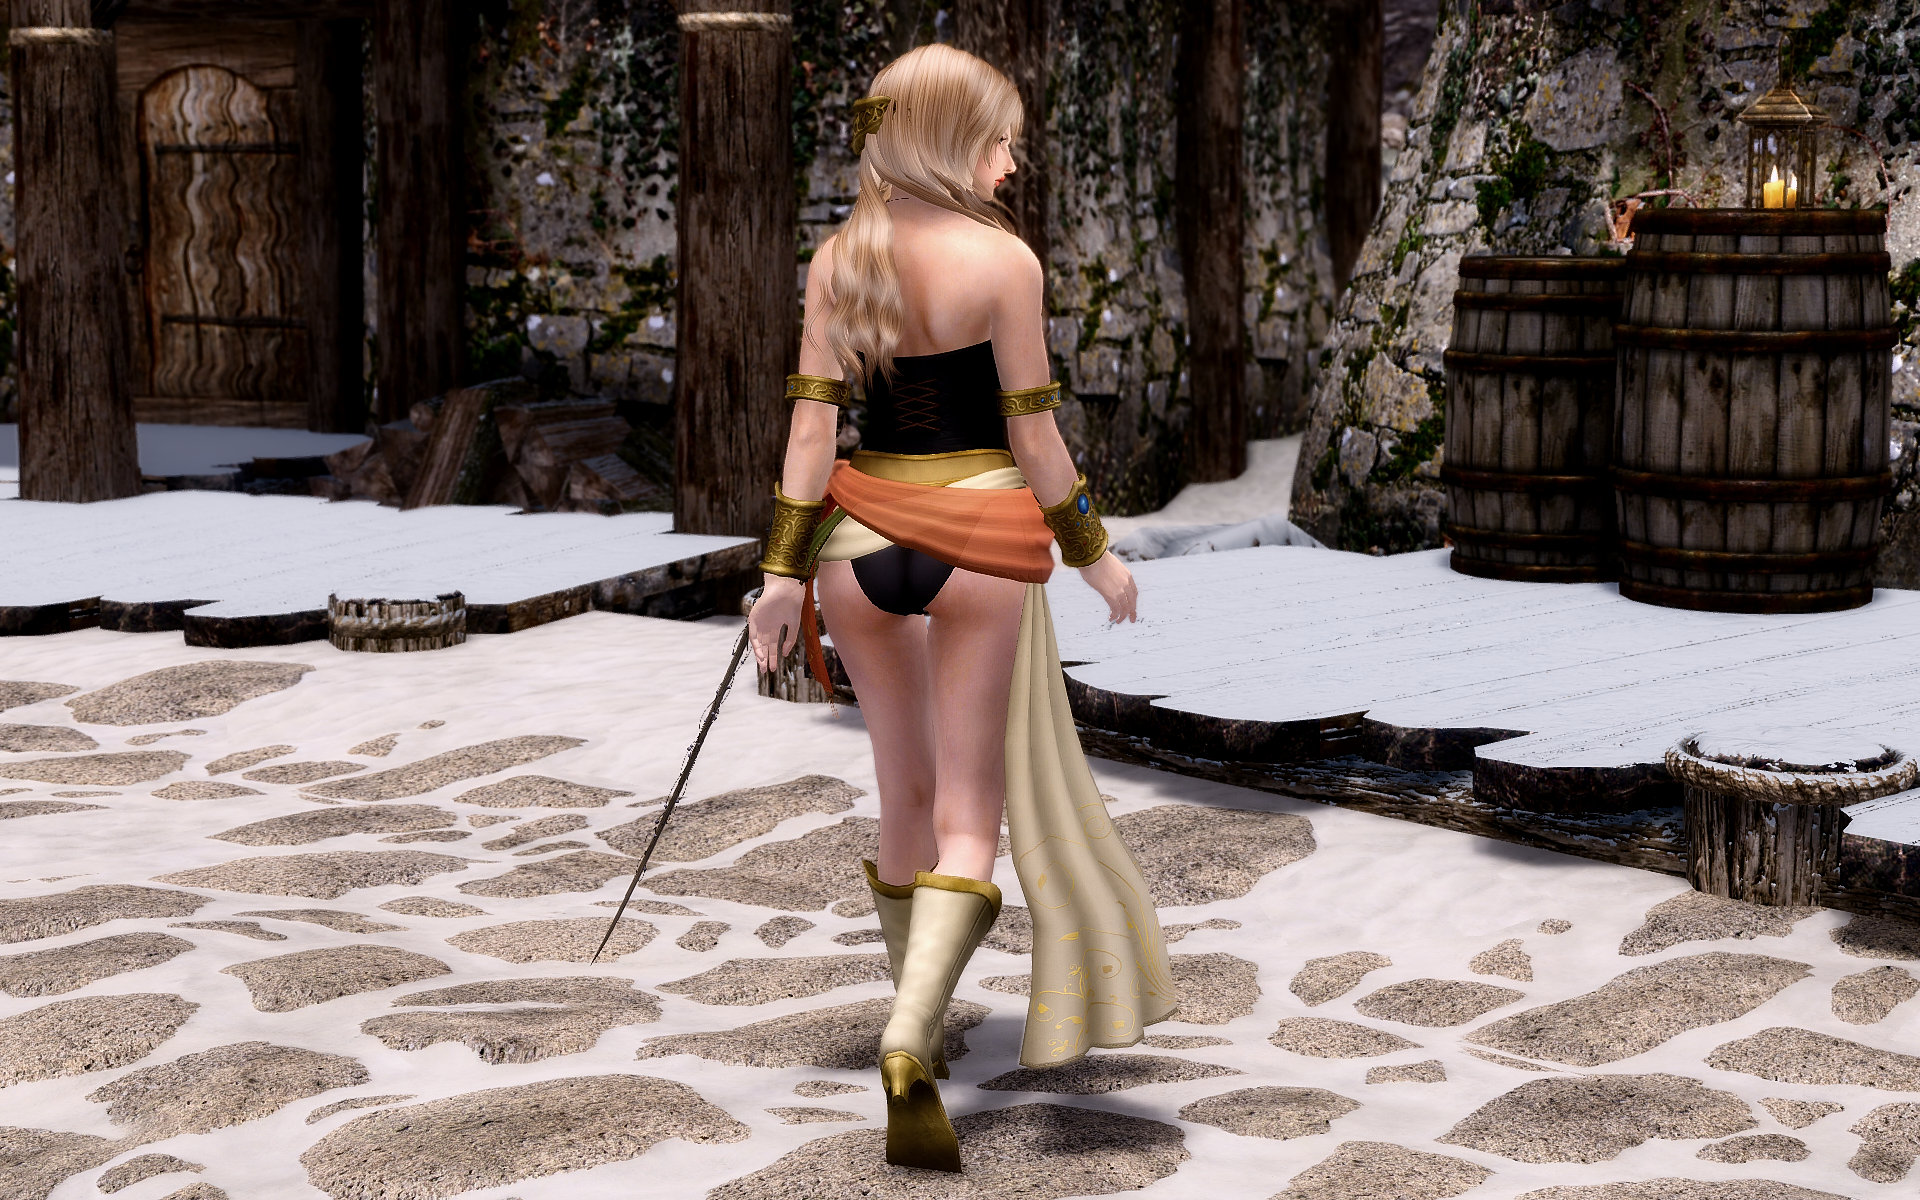 Final Fantasy Ⅵ Celes Outfits & Sword Renewal